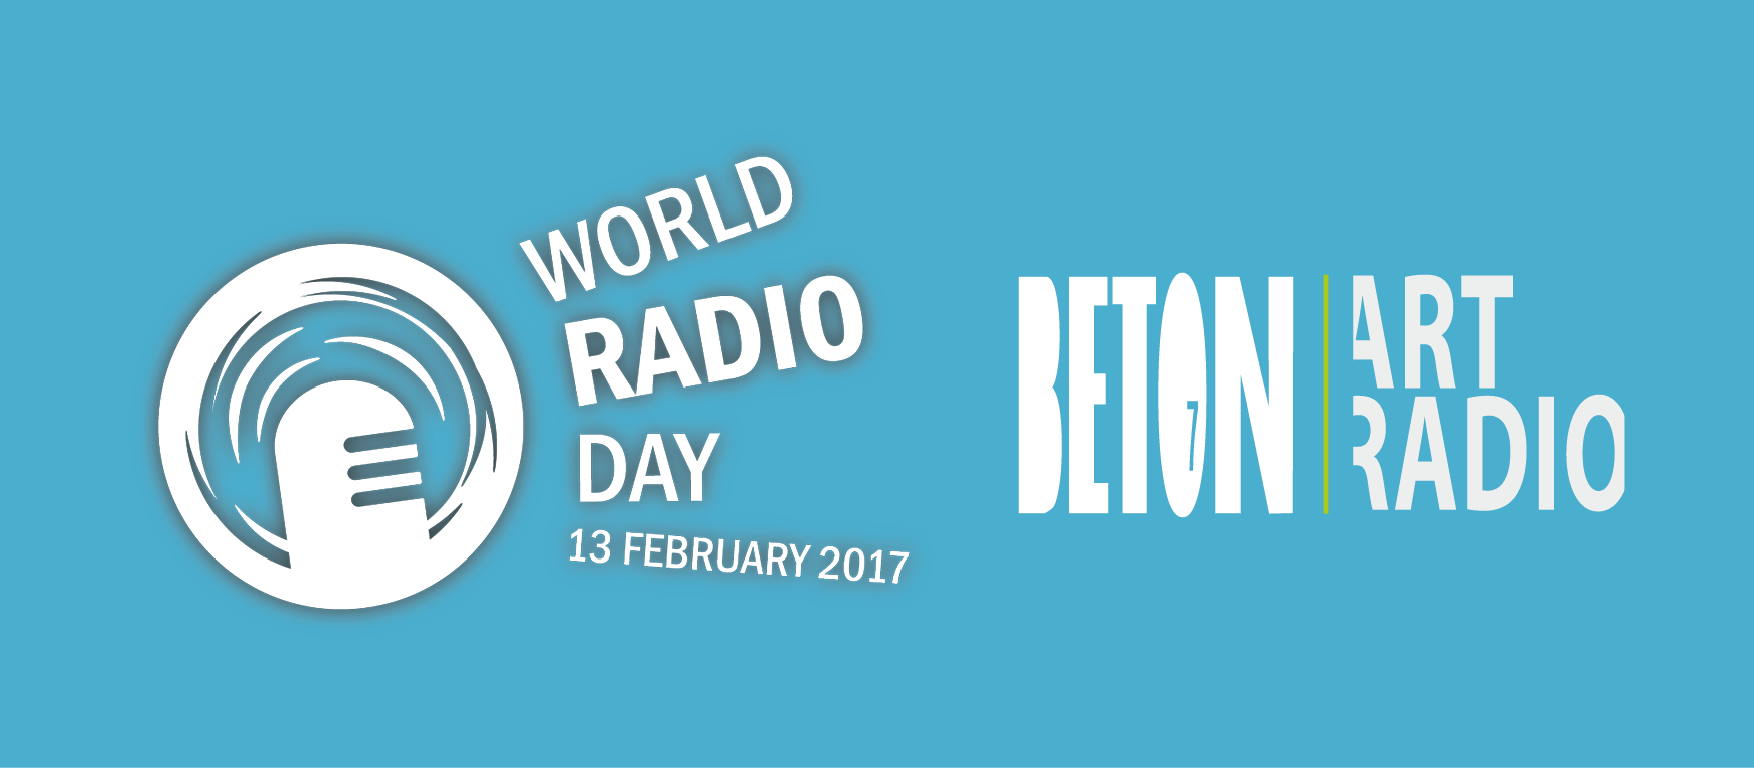 world radio day2017 01